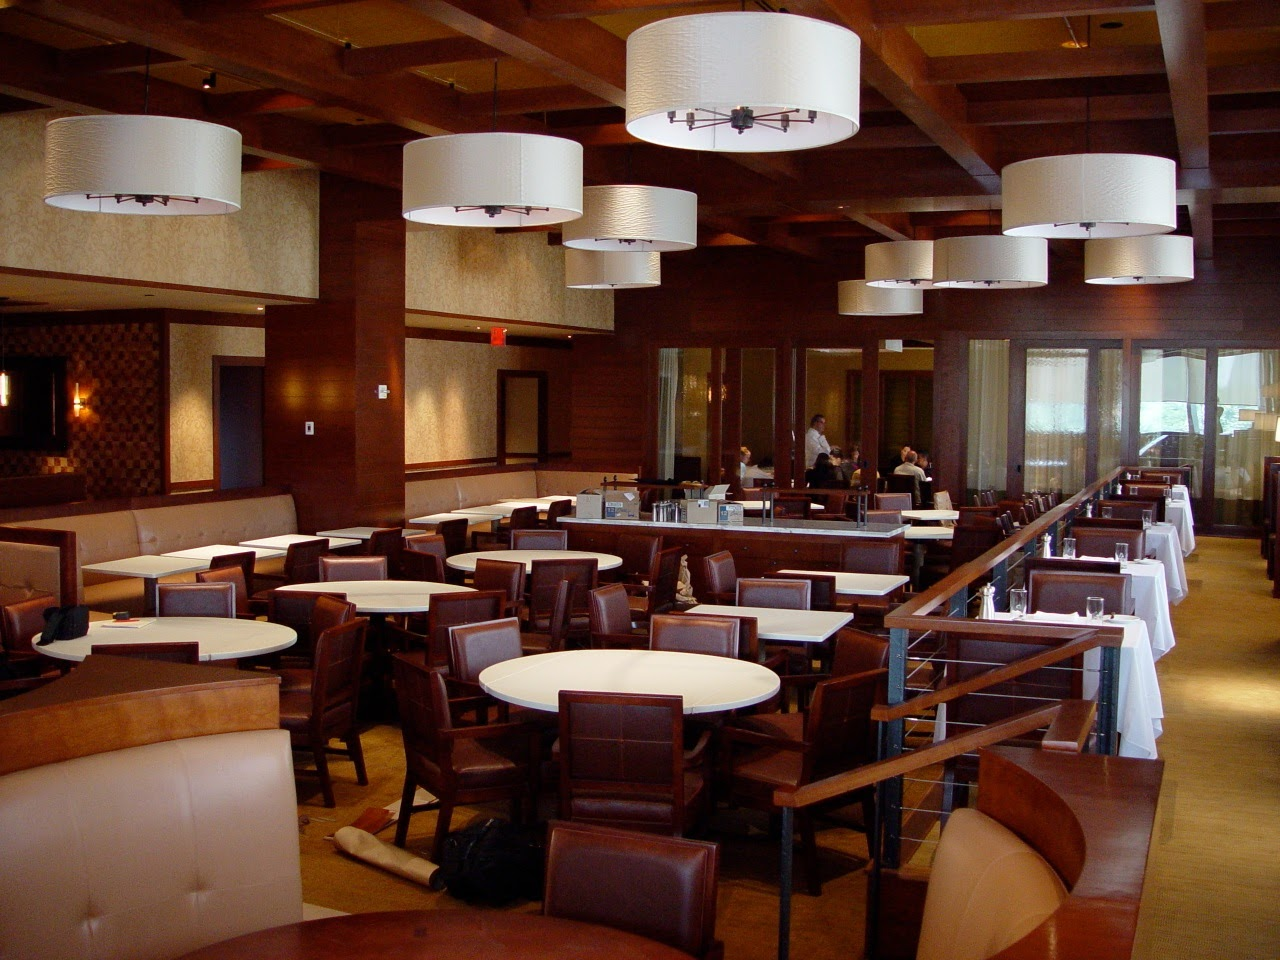 Levinger Booths and Banquettes - Custom Project for Porter House Restaurant